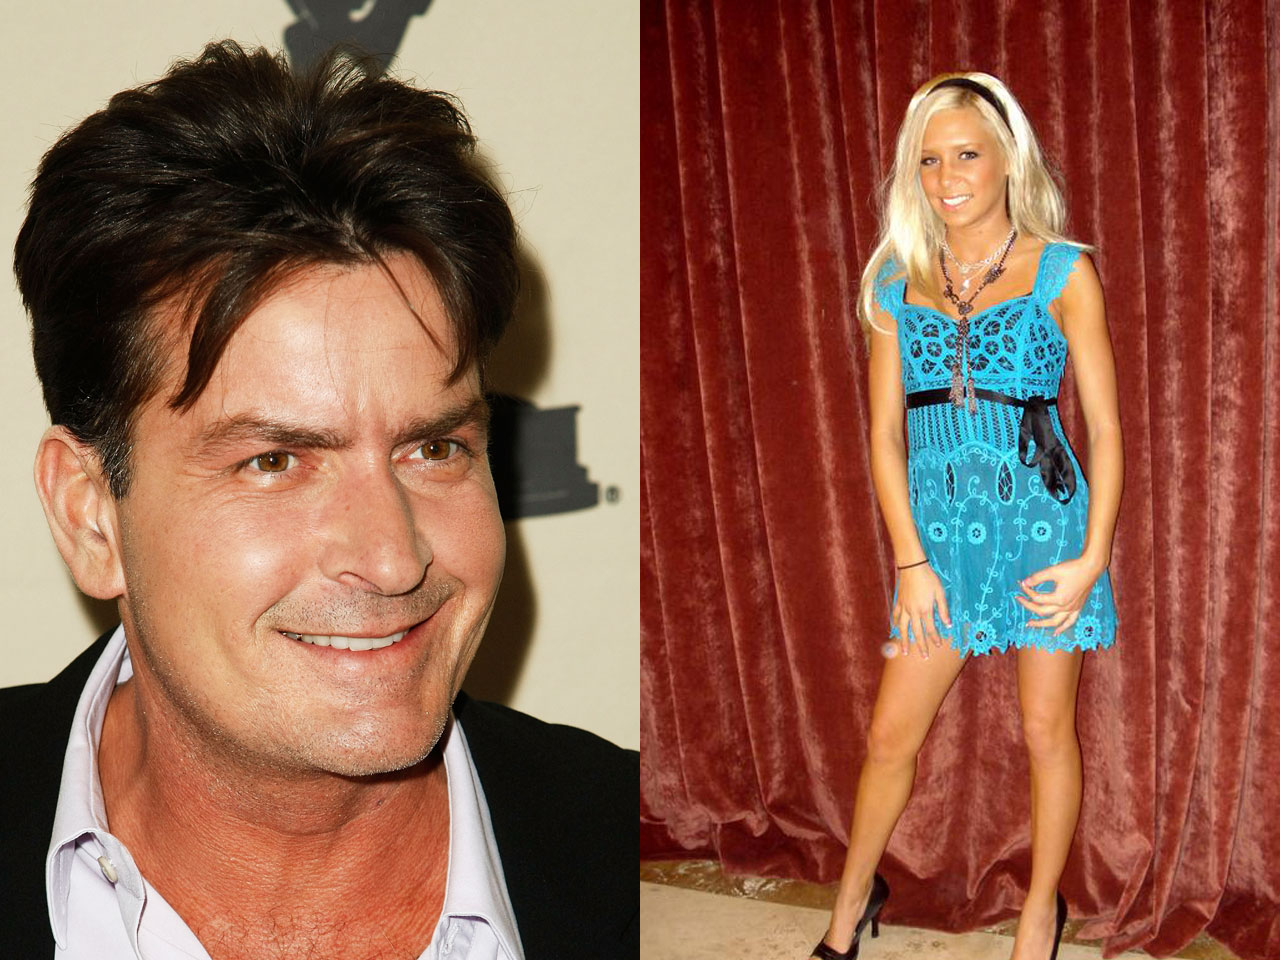 Charlie Sheen Toothless Porn Star Kacey Jordan Says What Happened